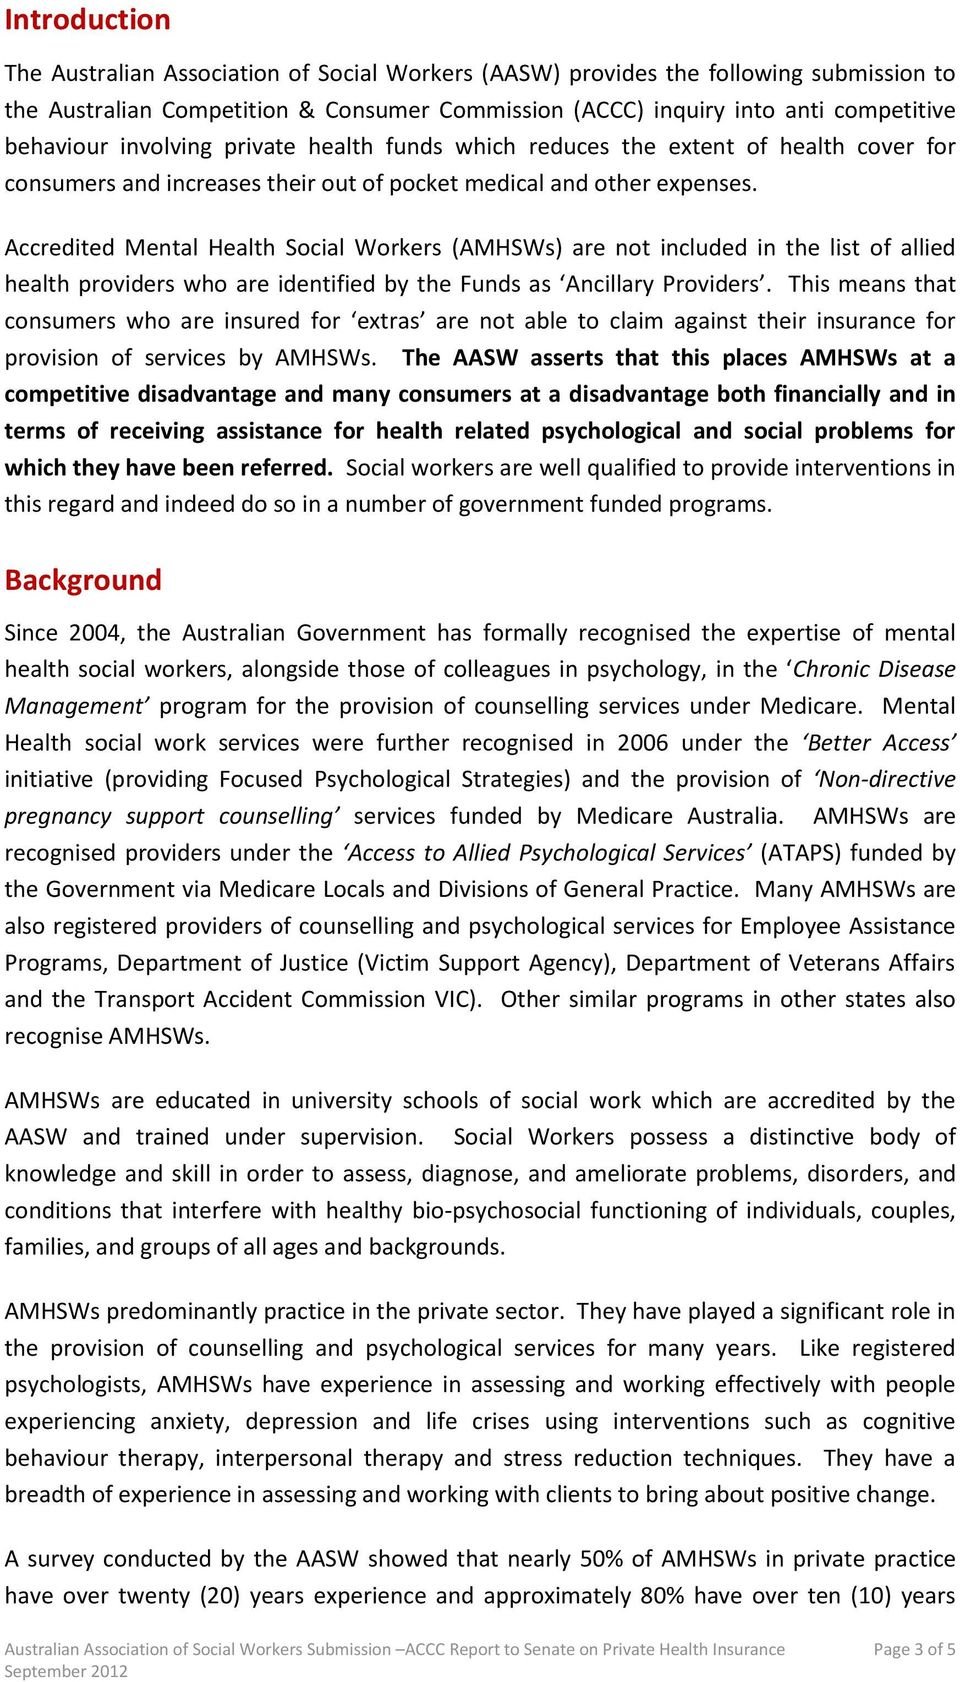 Accredited Mental Health Social Workers (AMHSWs) are not included in the list of allied health providers who are identified by the Funds as Ancillary Providers.